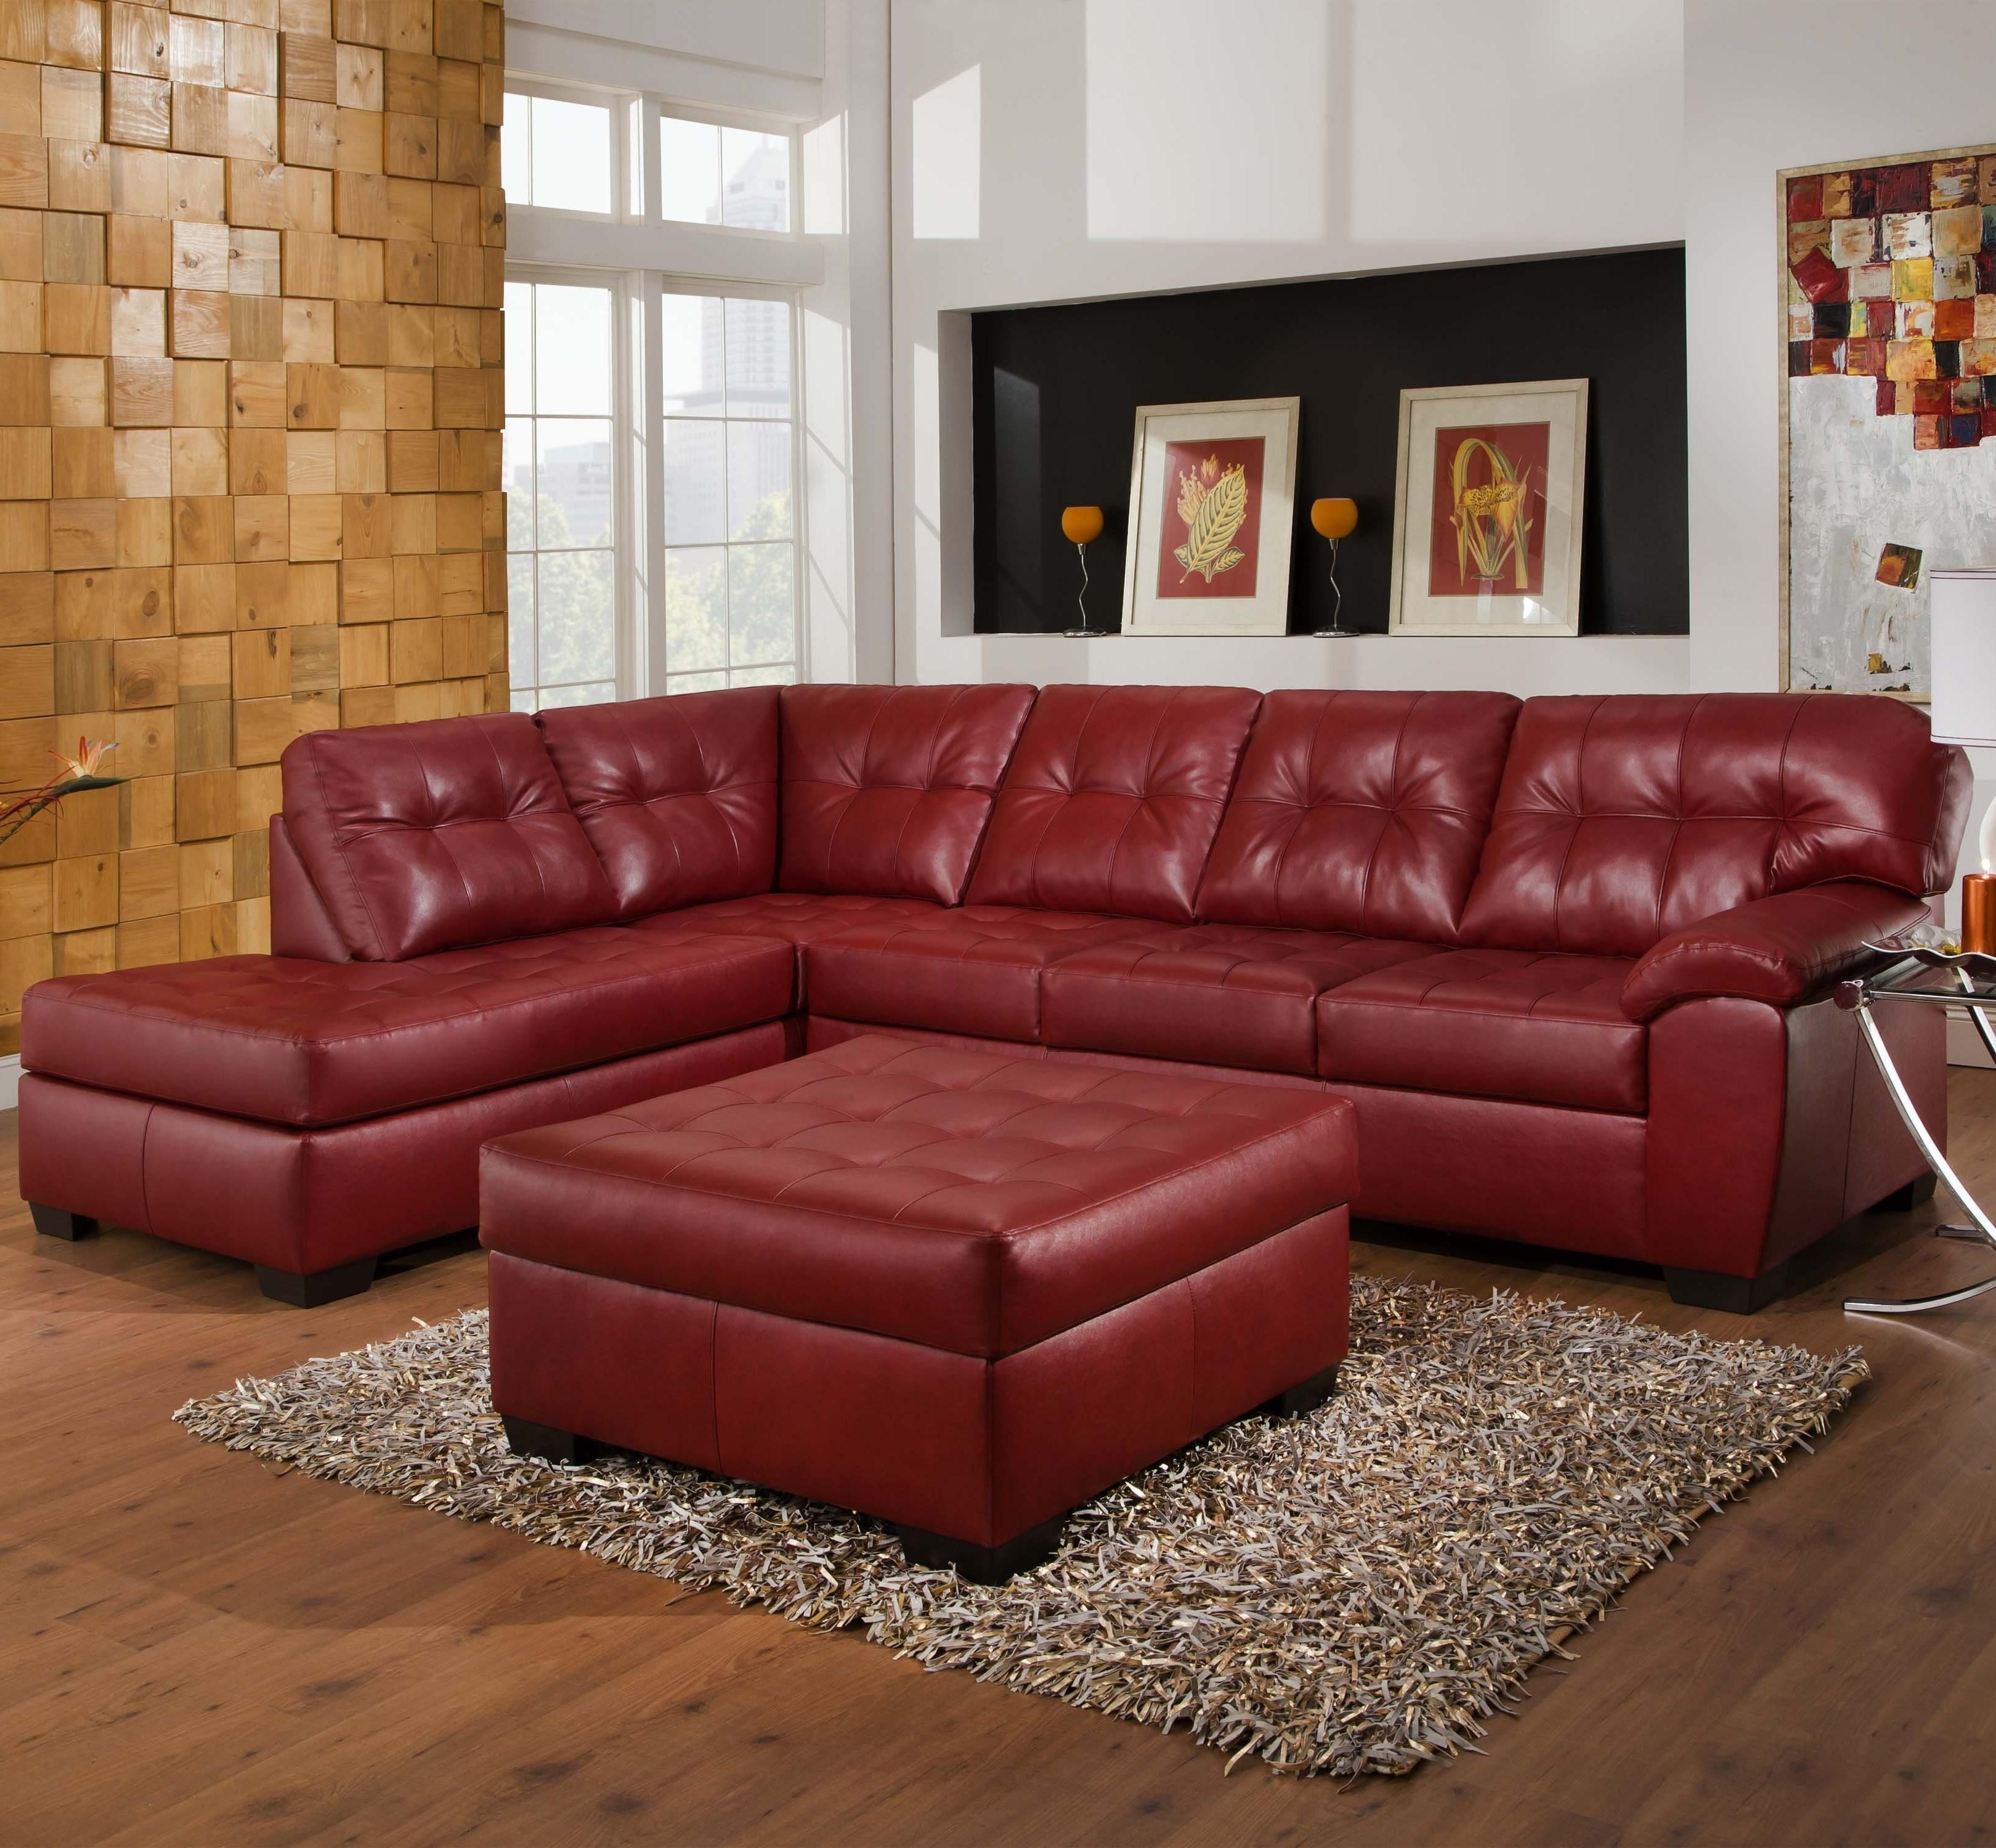 Favorite 9569 2 Piece Sectional With Tufted Seats & Backsimmons Inside Jackson Tn Sectional Sofas (View 3 of 15)